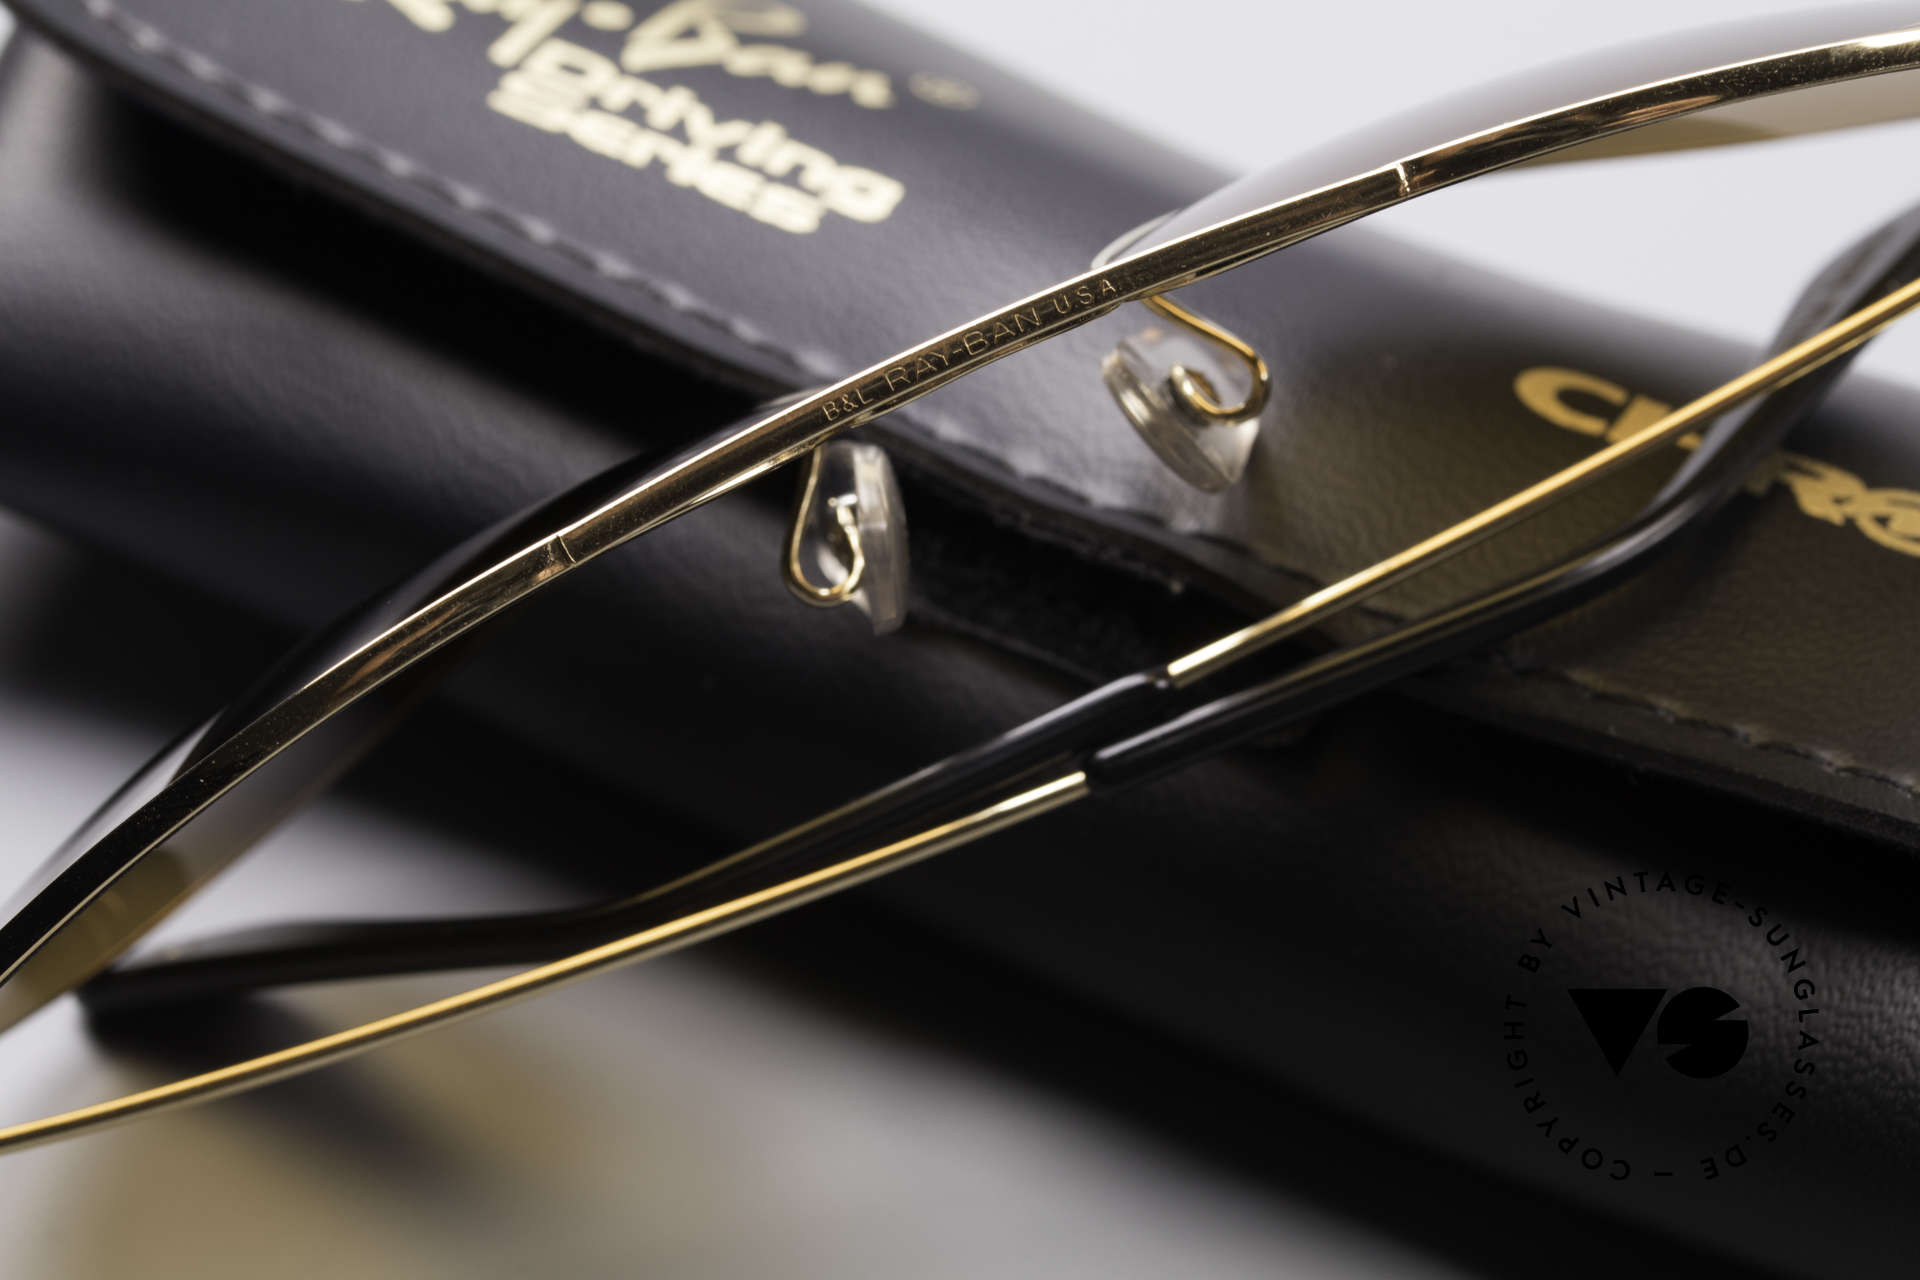 Ray Ban Large Metal Driving Chromax, NO RETRO sunglasses, but an old USA-ORIGINAL, Made for Men and Women